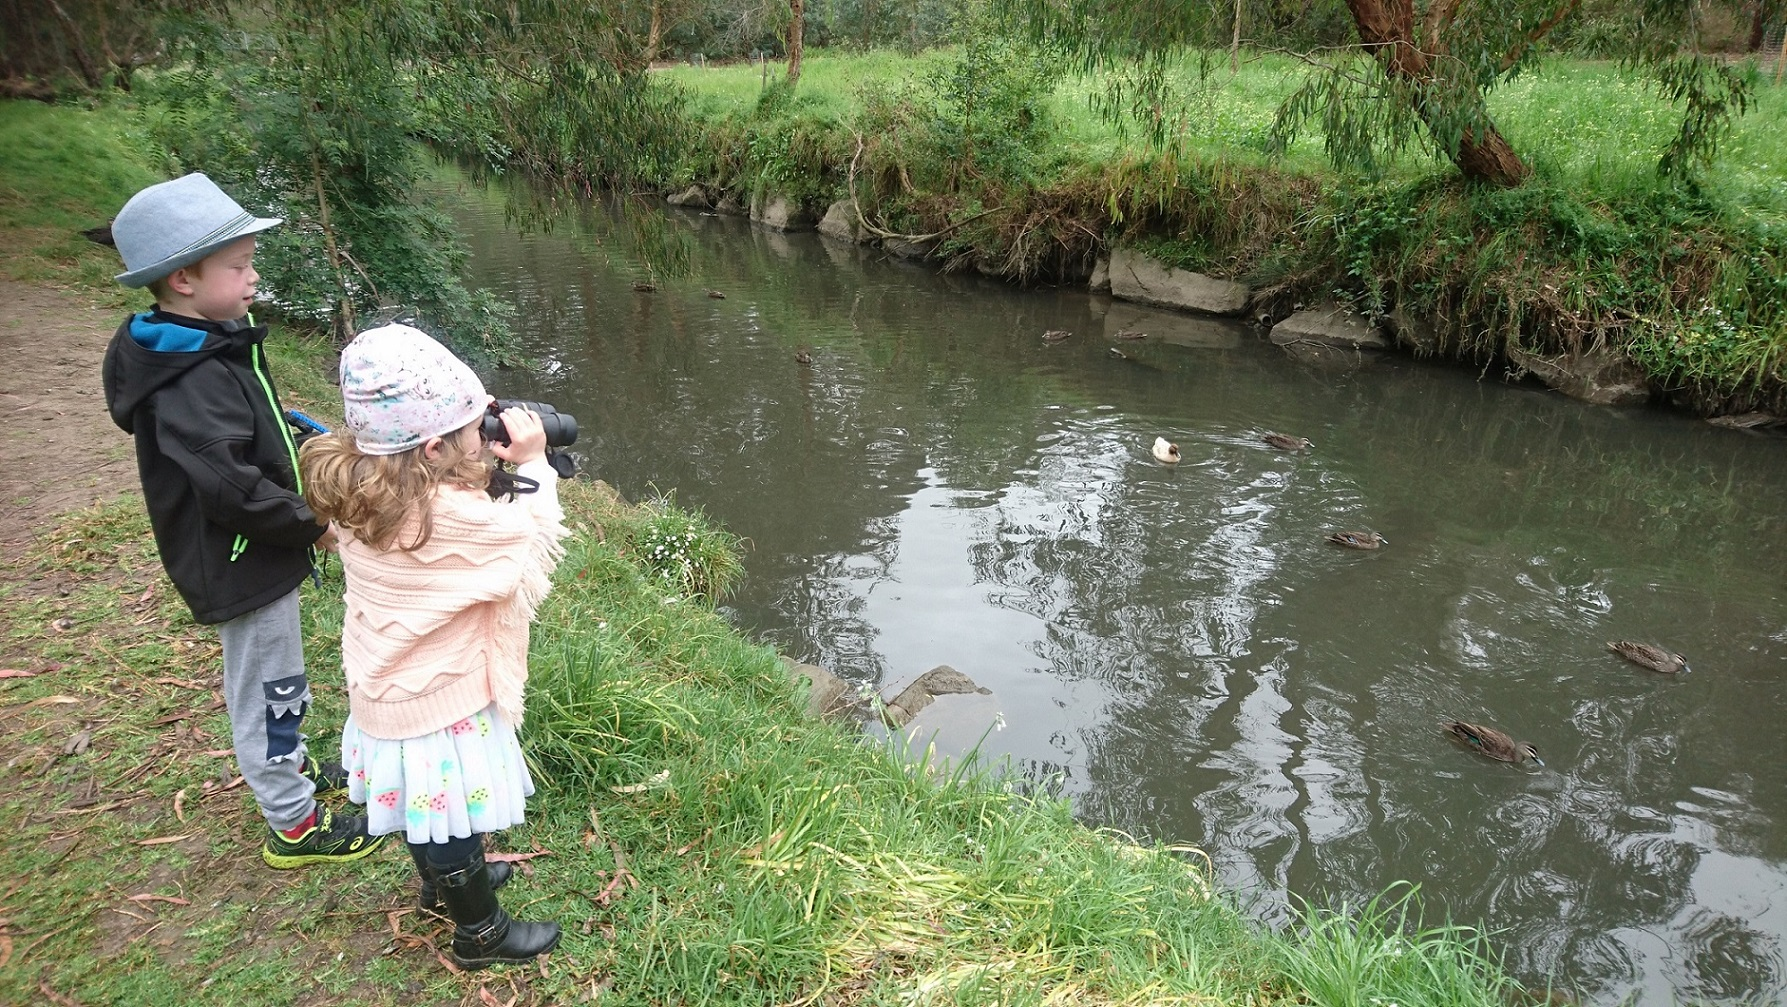 Photo of two young children on creek bank observing birds on the water. The little girl using binoculars.